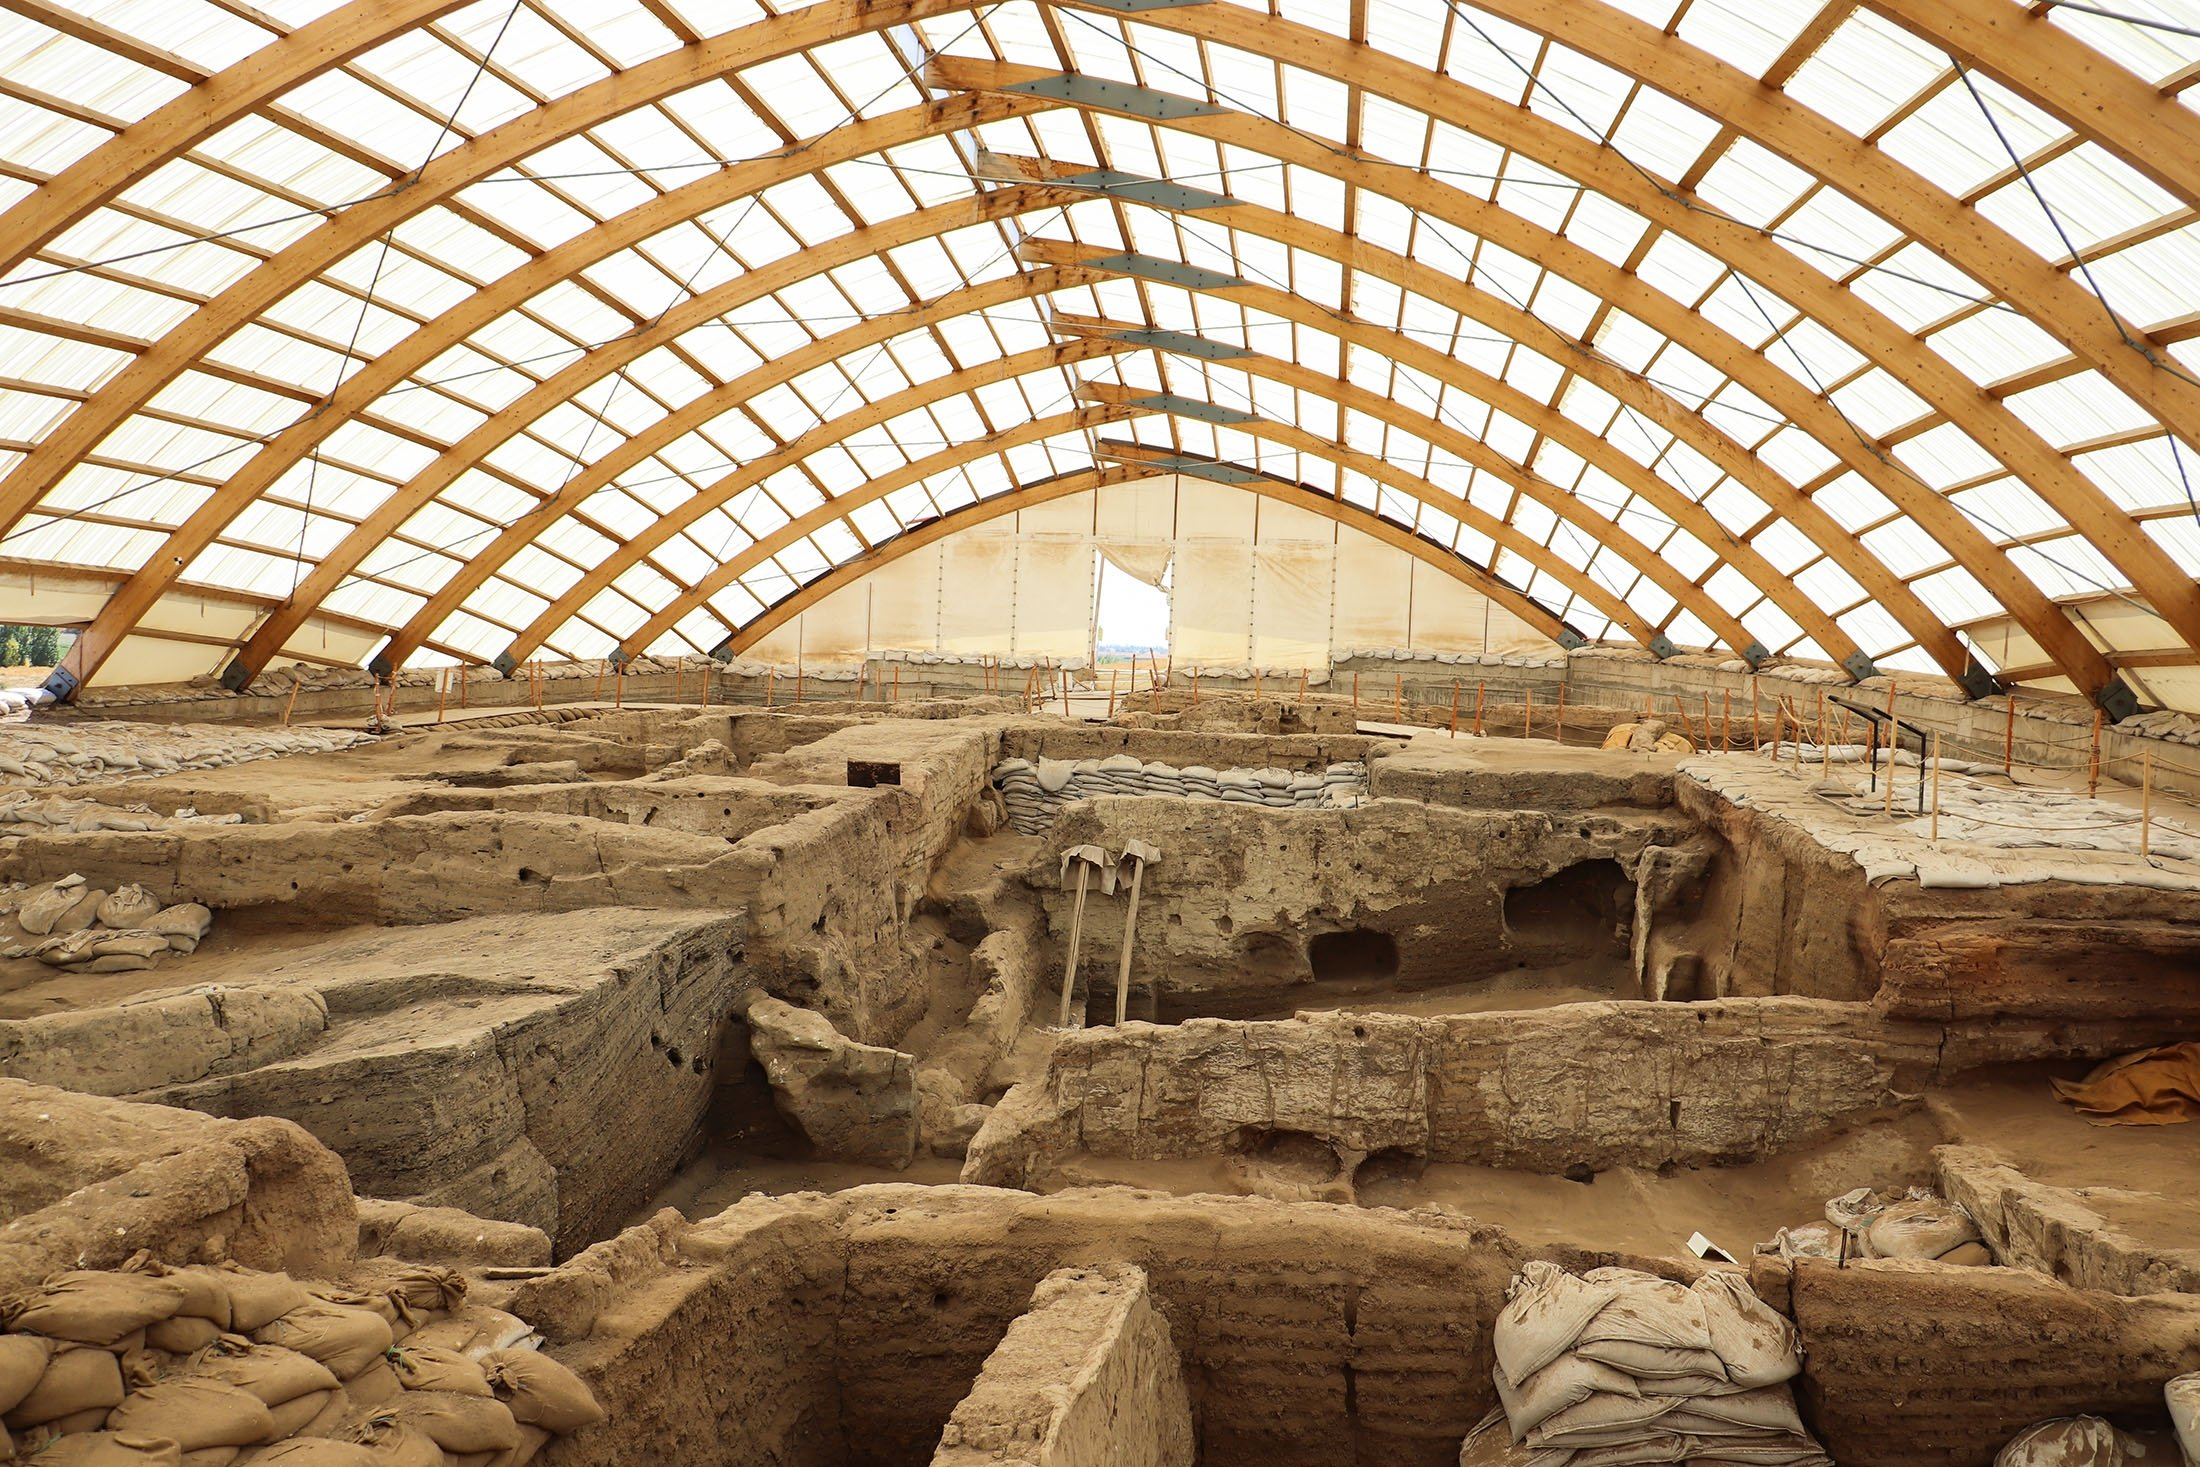 A view of the ancient city of Çatalhöyük and archaeological excavations. (Shutterstock Photo)